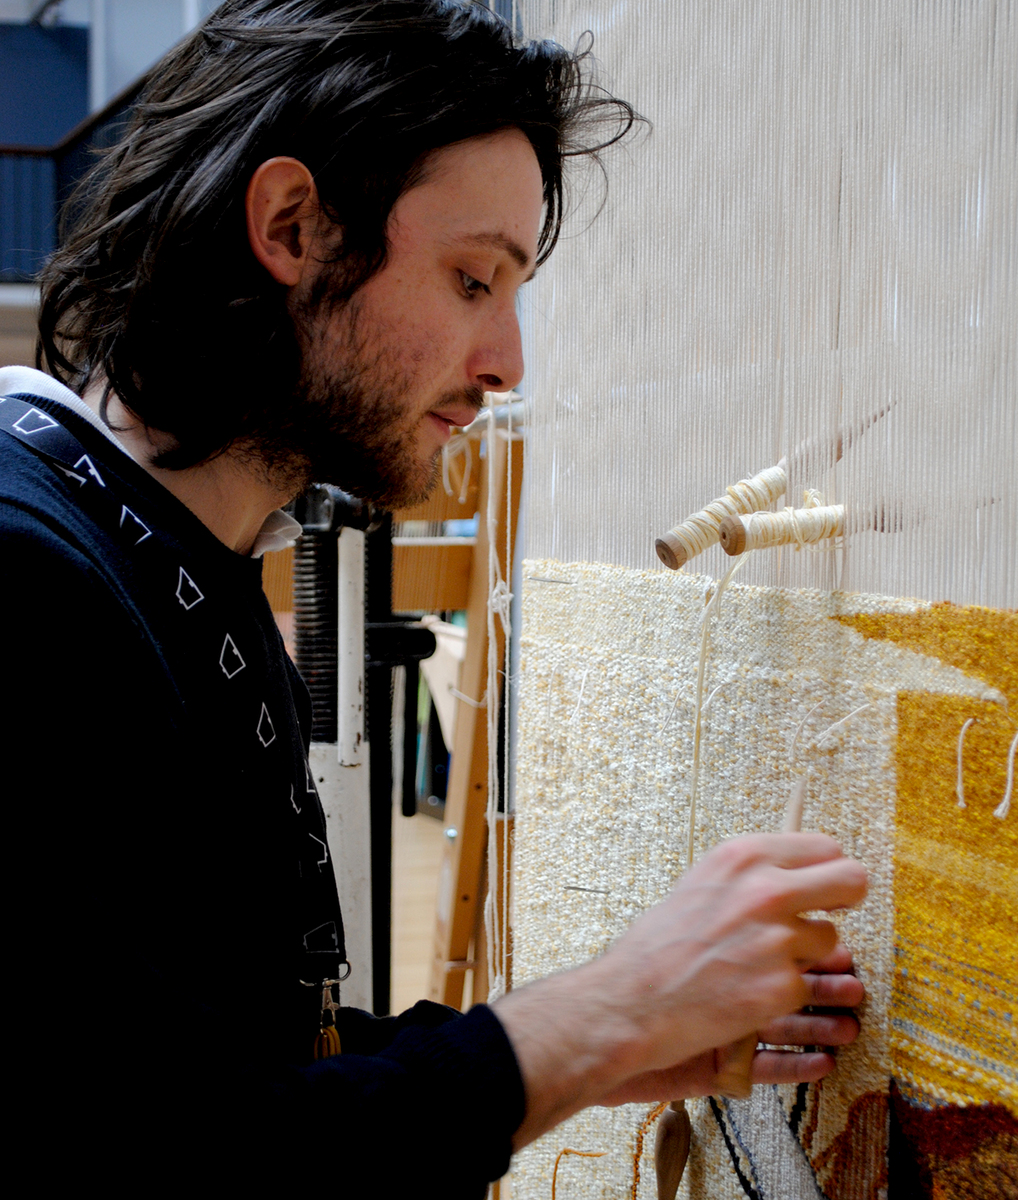 Weaving Demonstration by Apprentice Weaver Ben Hymers